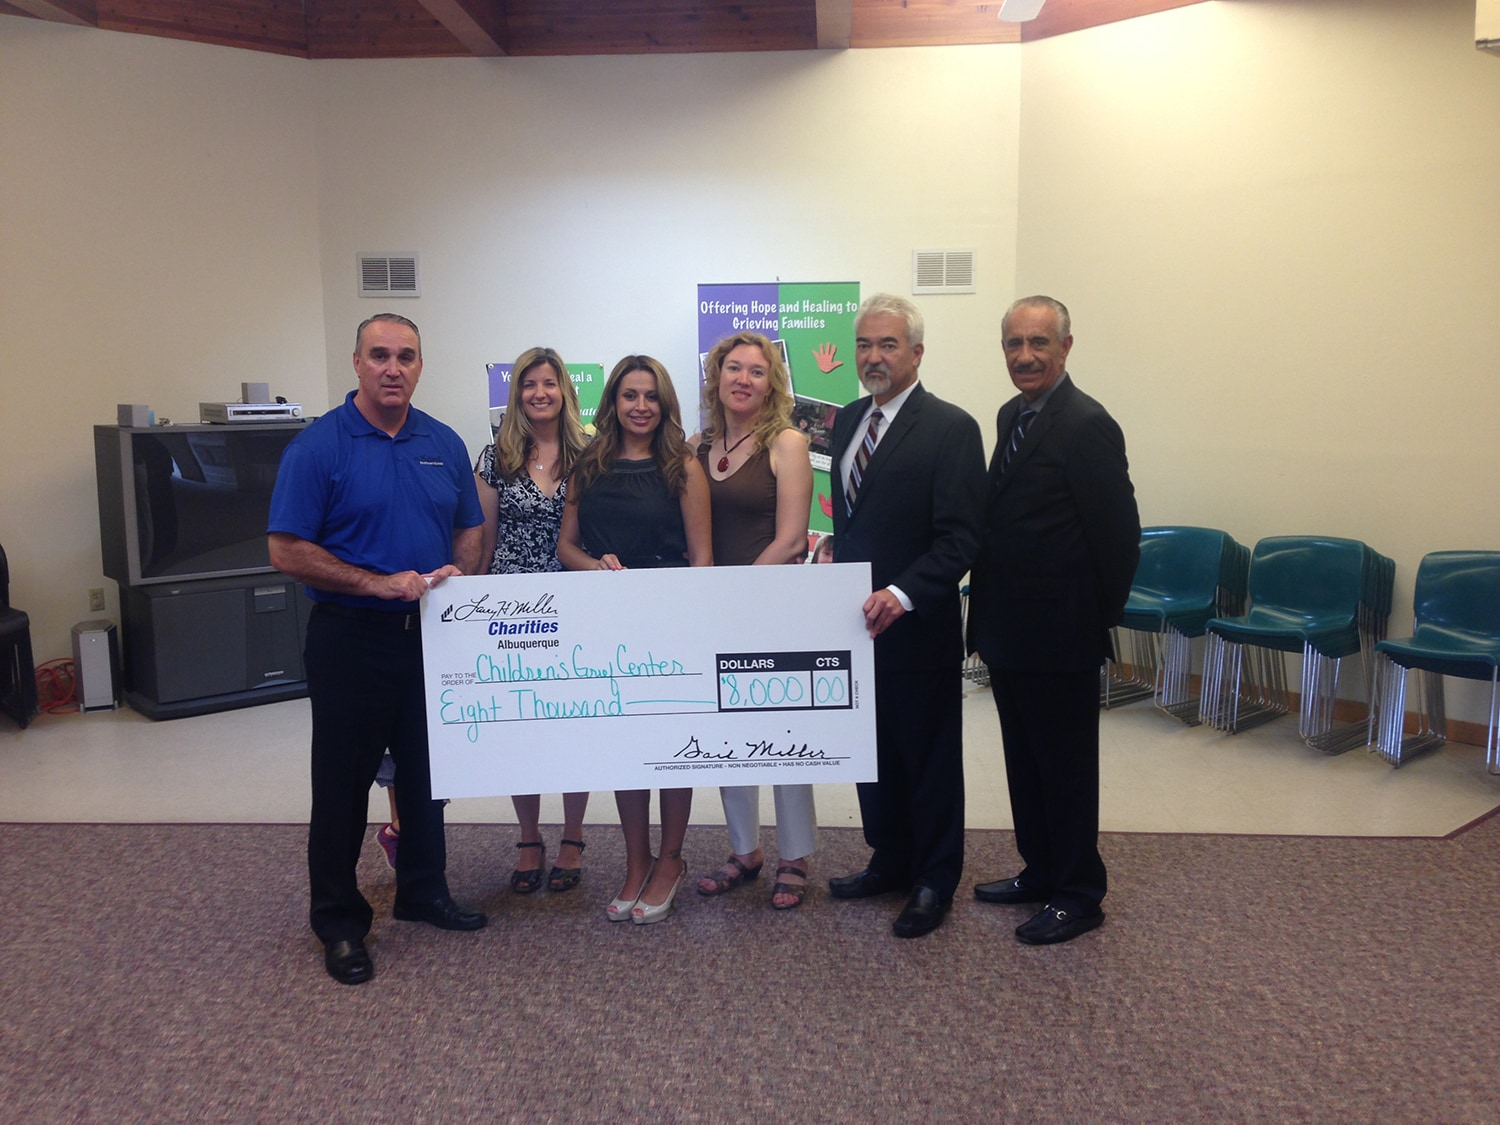 Southwest Hyundai proudly supports charities like Children's Grief Center in Albuquerque